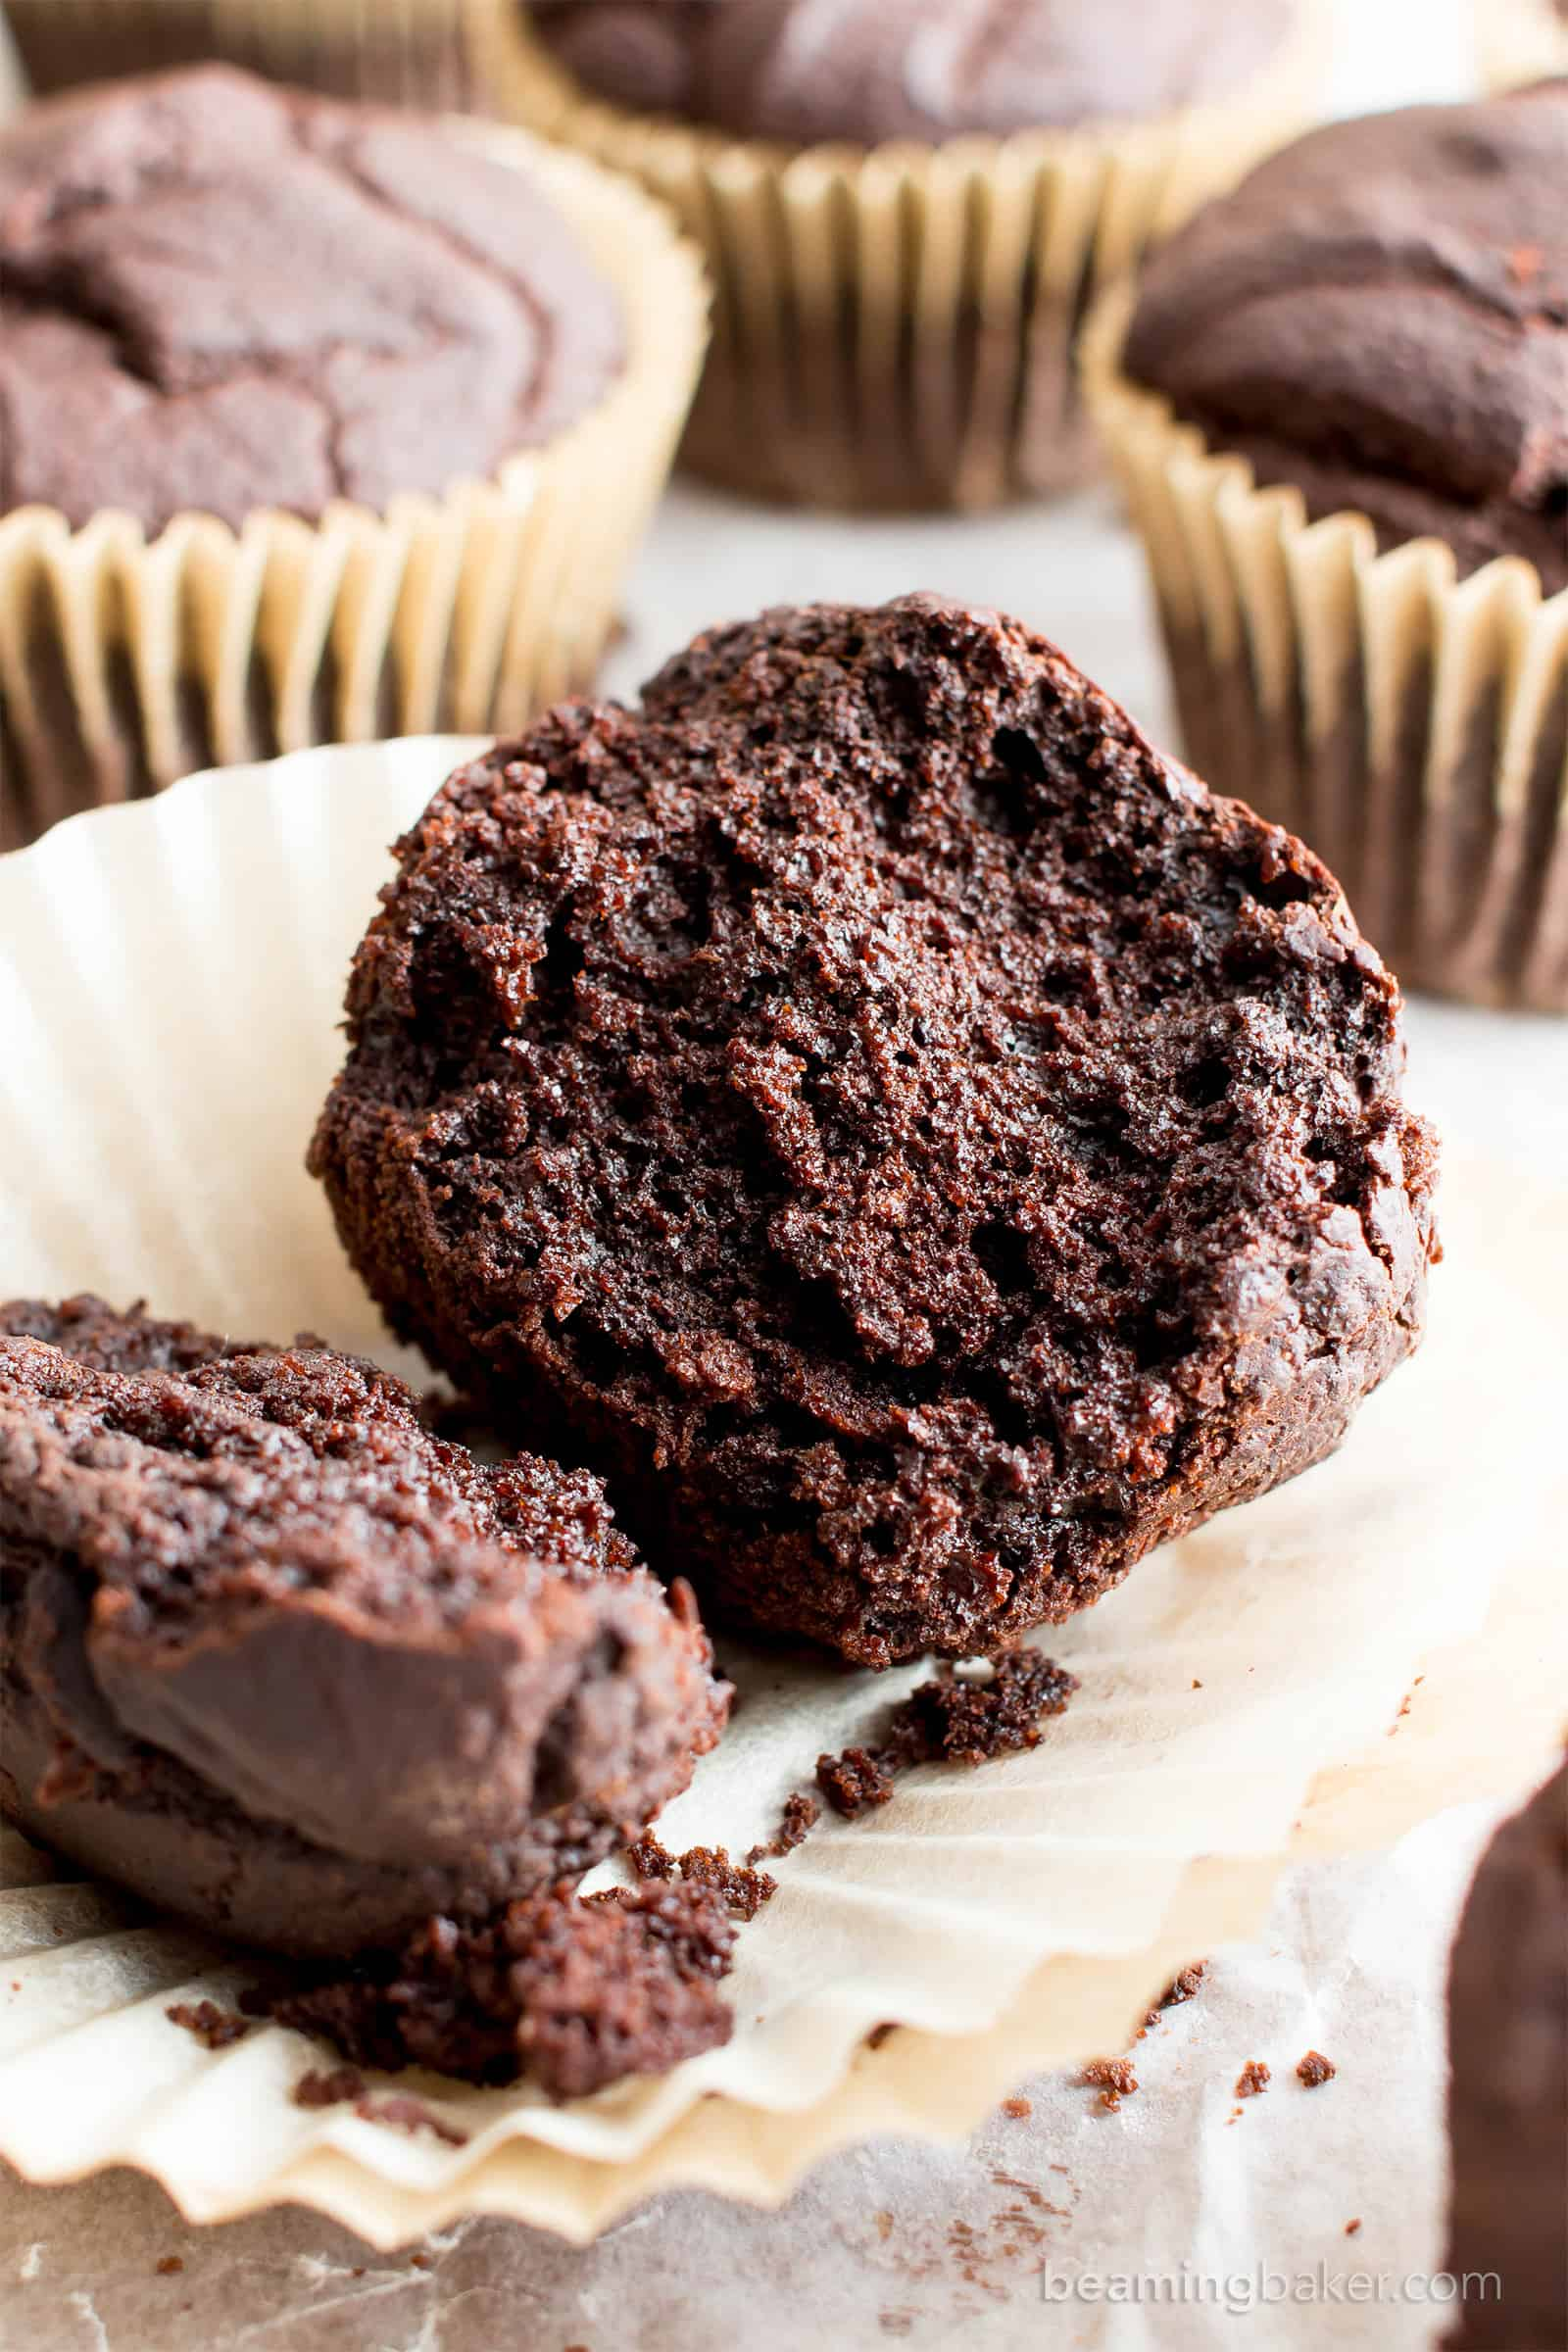 Easy Gluten Free Vegan Dark Chocolate Muffins (V, GF): super rich and satisfyingly moist dark chocolate muffins perfect for breakfast or a quick snack! #Vegan #GlutenFree #DairyFree #Chocolate #Flourless | Recipe on BeamingBaker.com